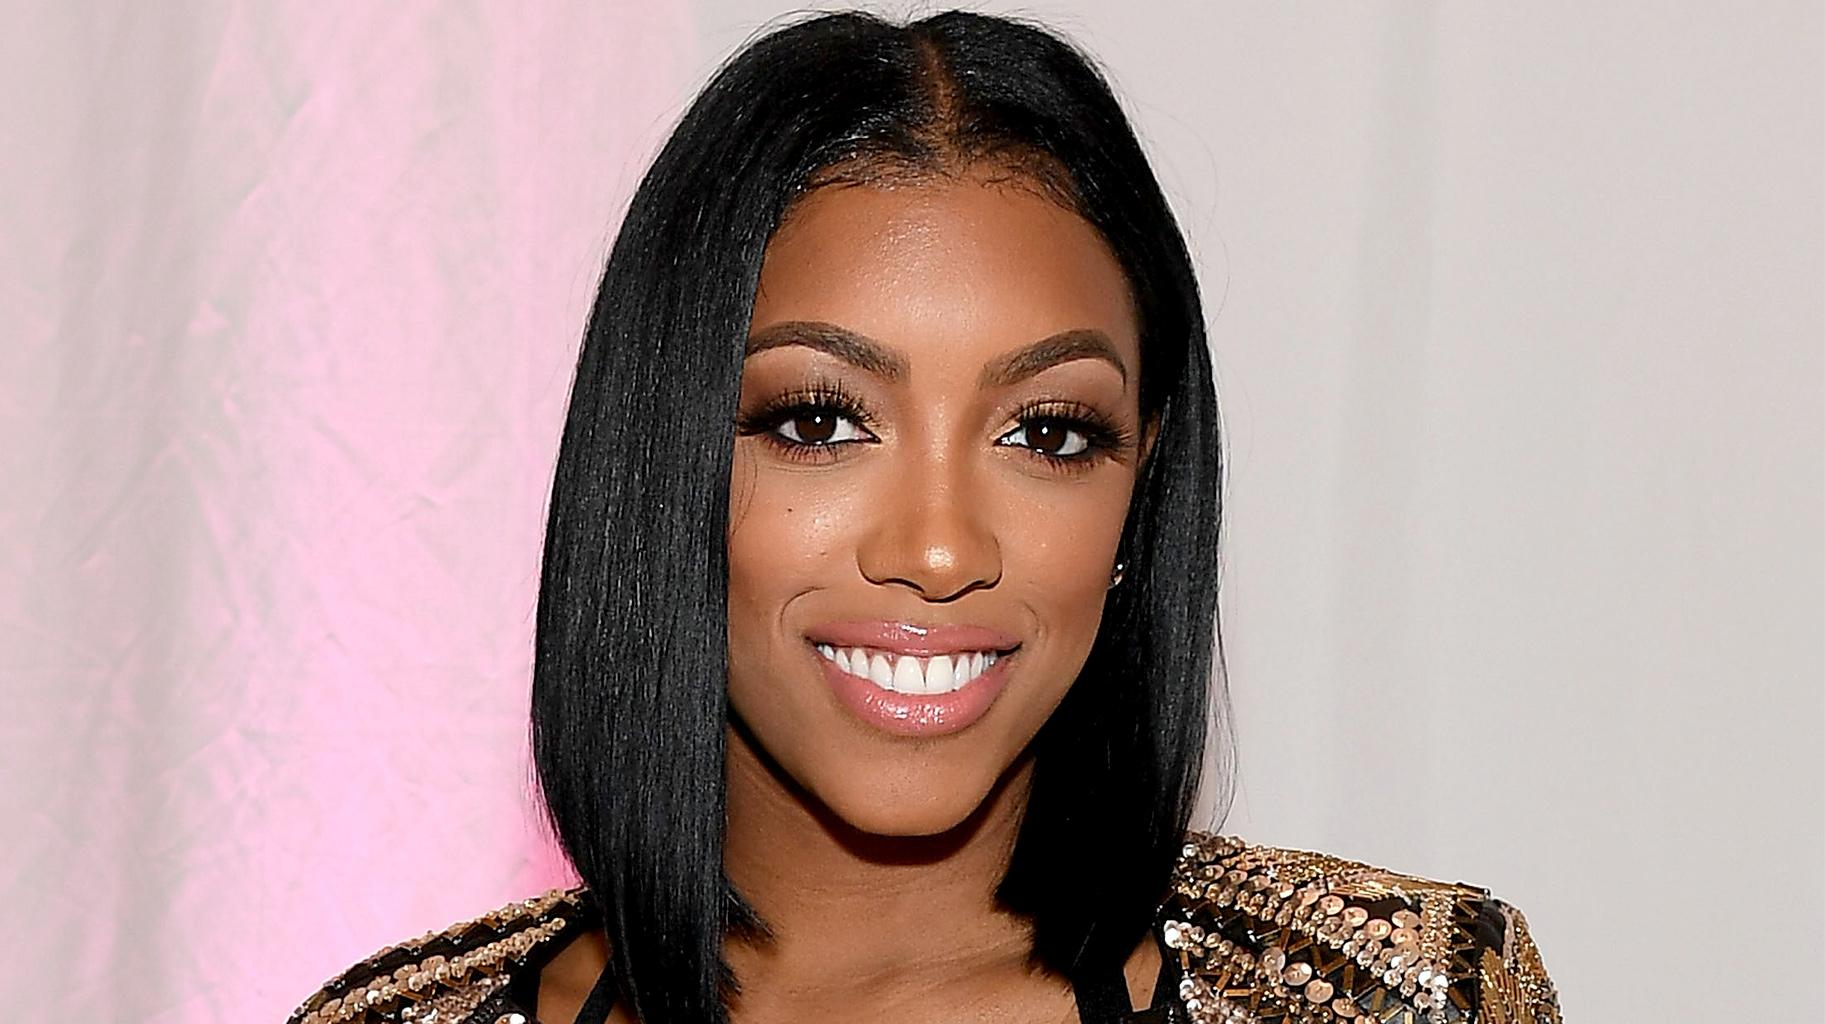 Porsha Williams Opens Up About Why She Chose To Have A Baby With Dennis McKinley And Her Relationship With Her Father